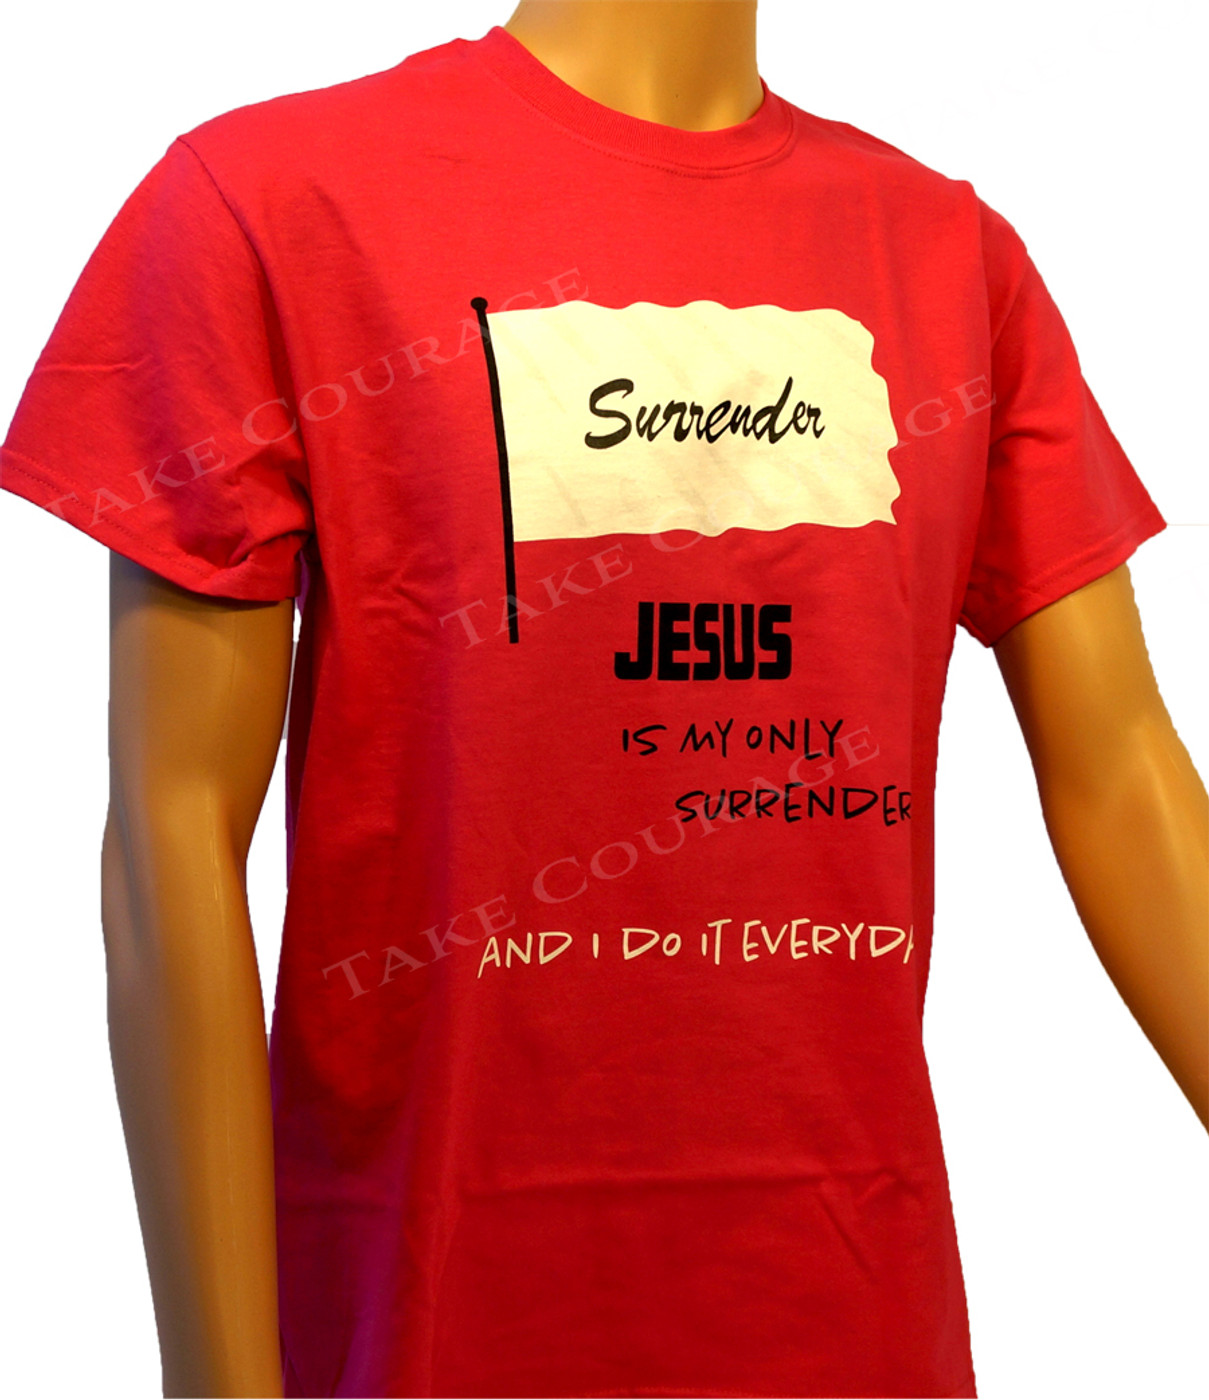 Surrender - Christian Shirt  - Pink